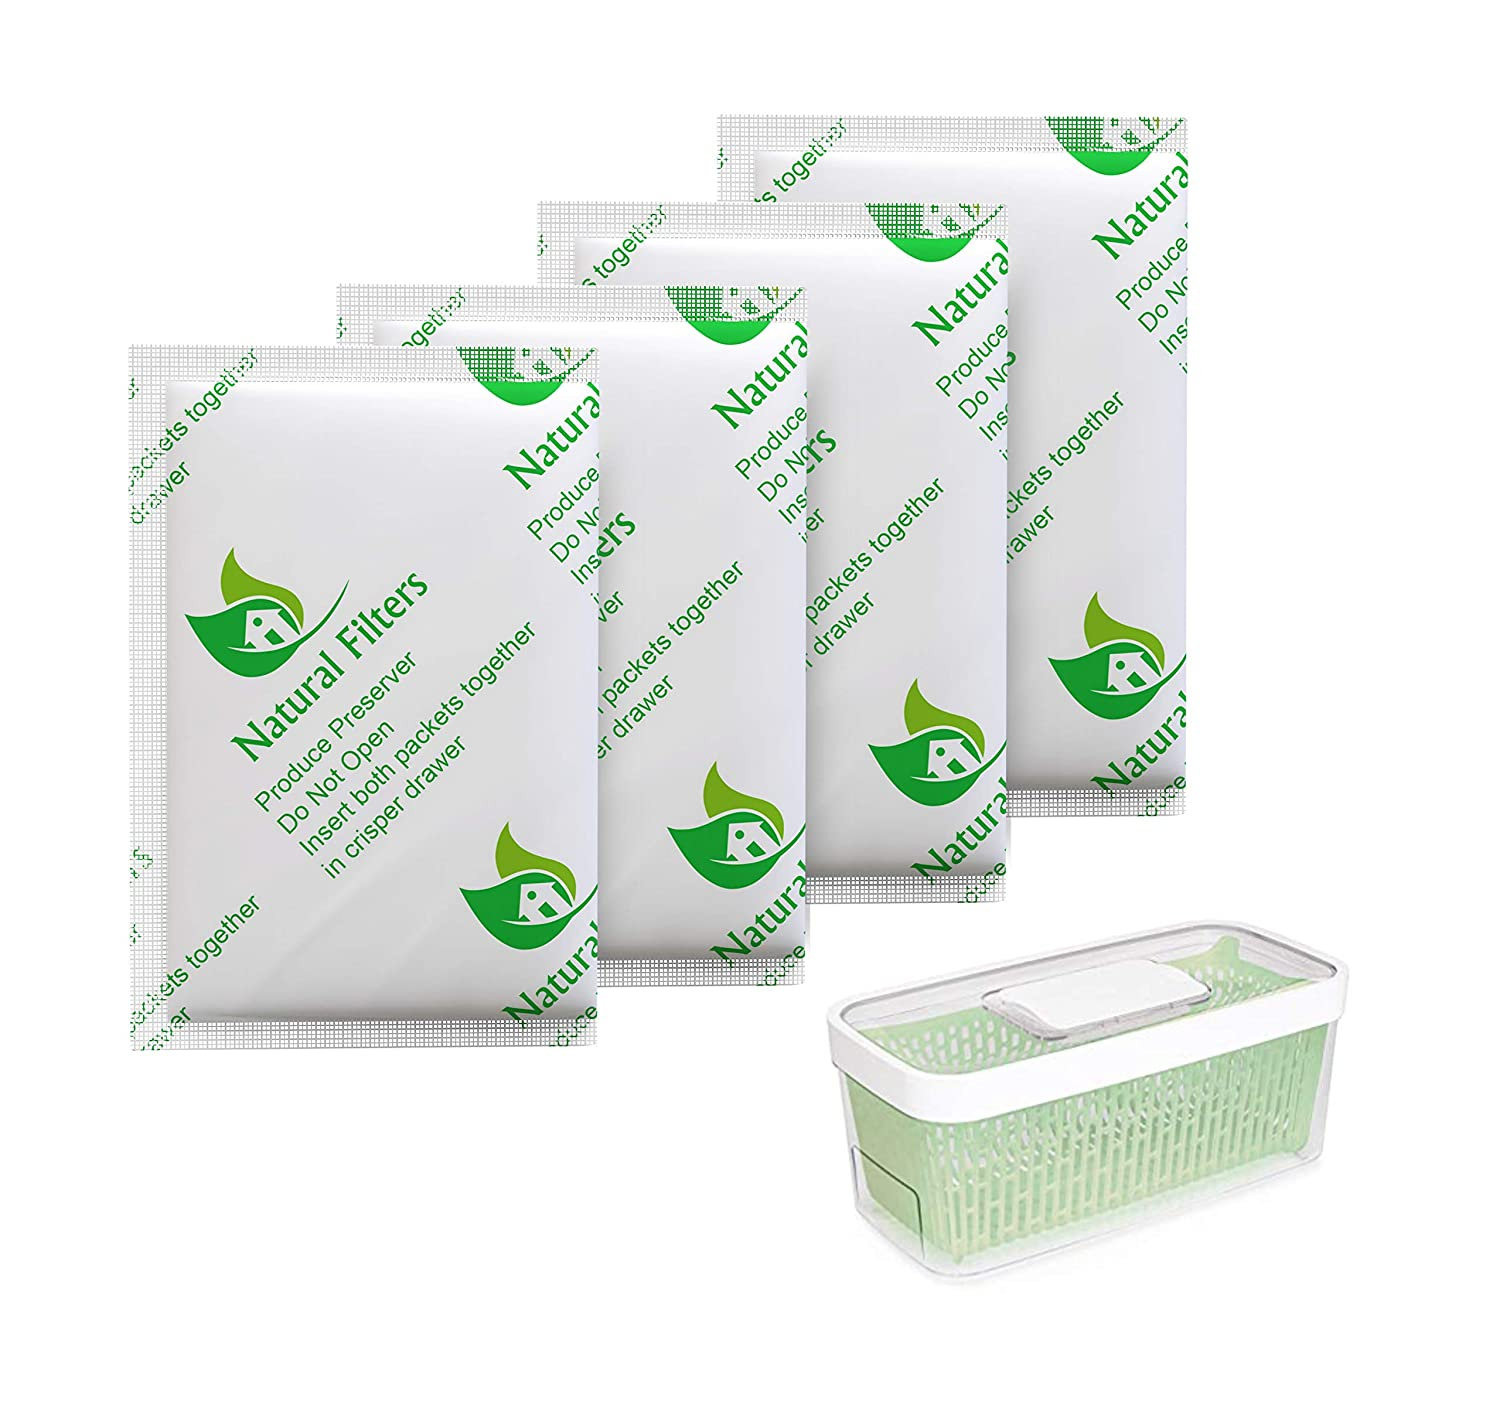 Natural Filters 4 Pack Greensaver Produce Preserver Filter Refills Compatible With OXO Greensaver - 11145300 Fully Breathable Tyvek Sachet